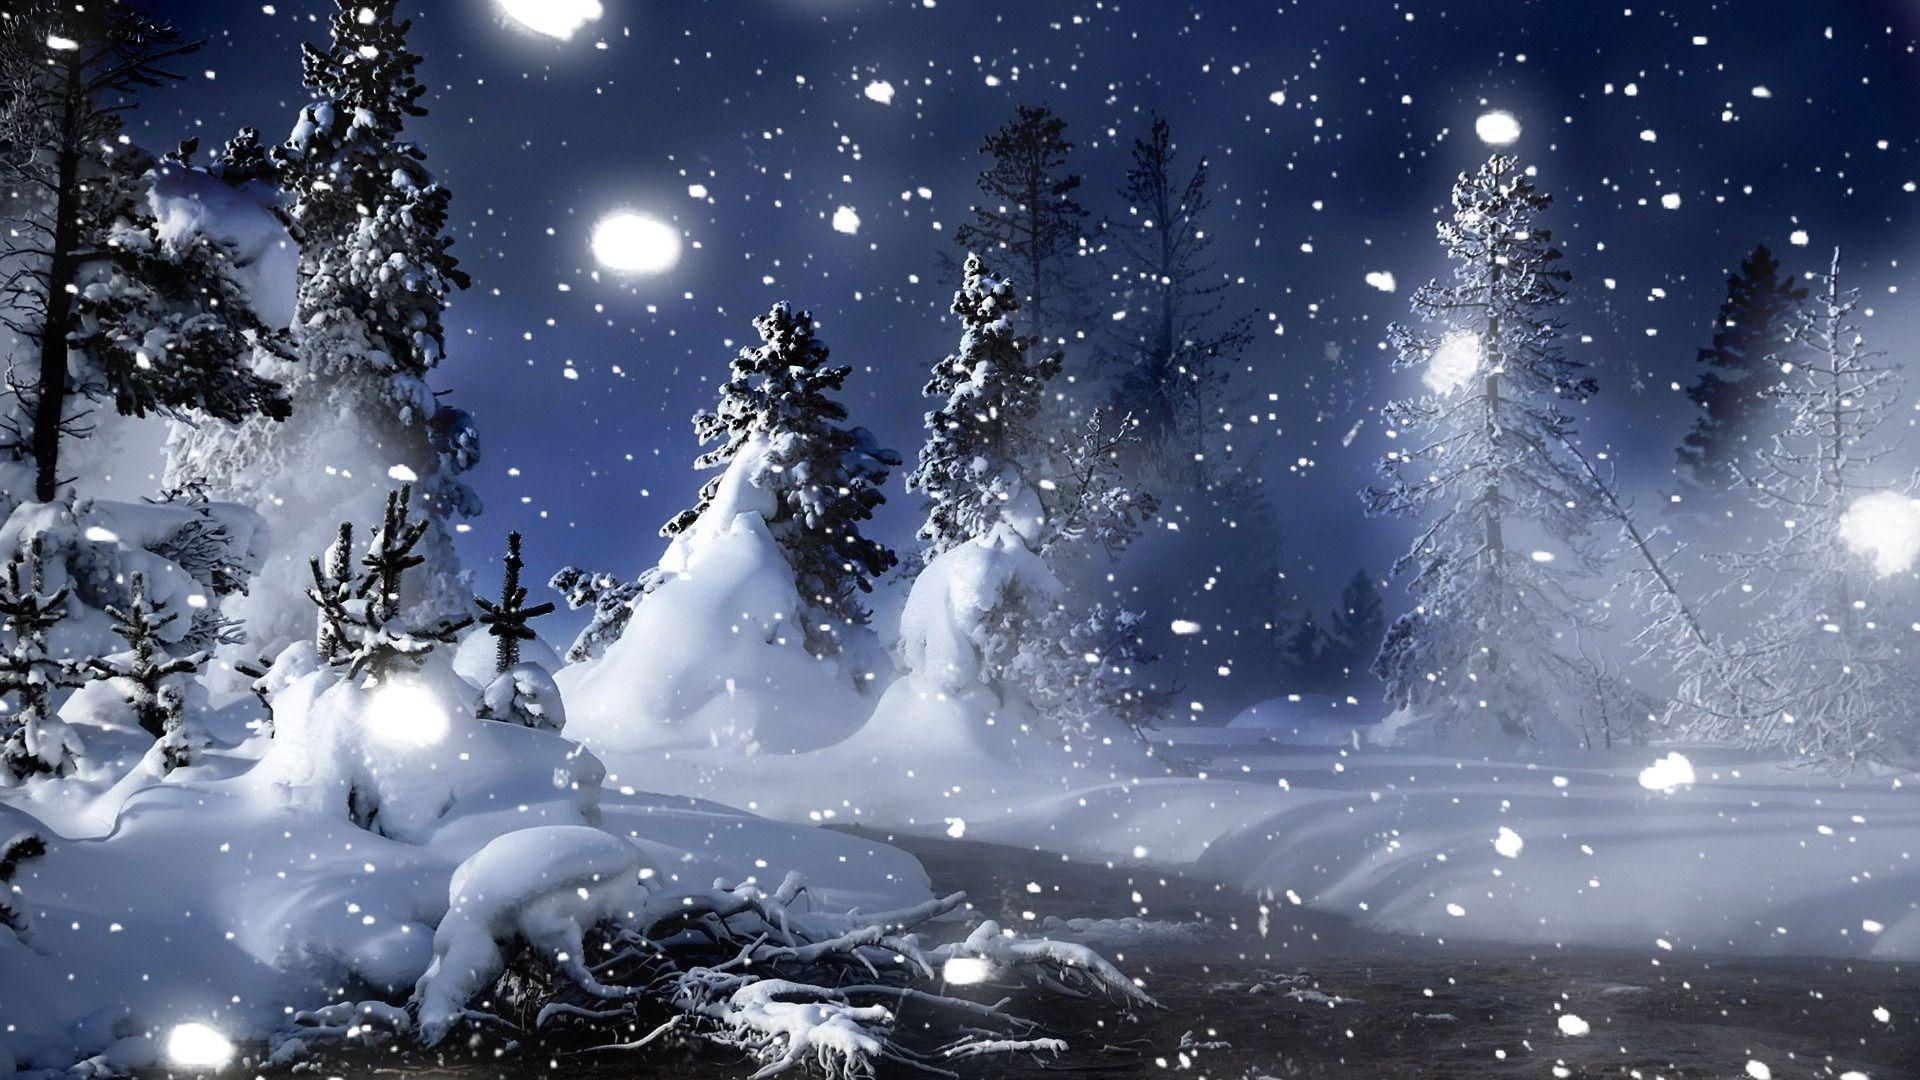 Winter Snow Hd Wallpapers Wallpaper Cave